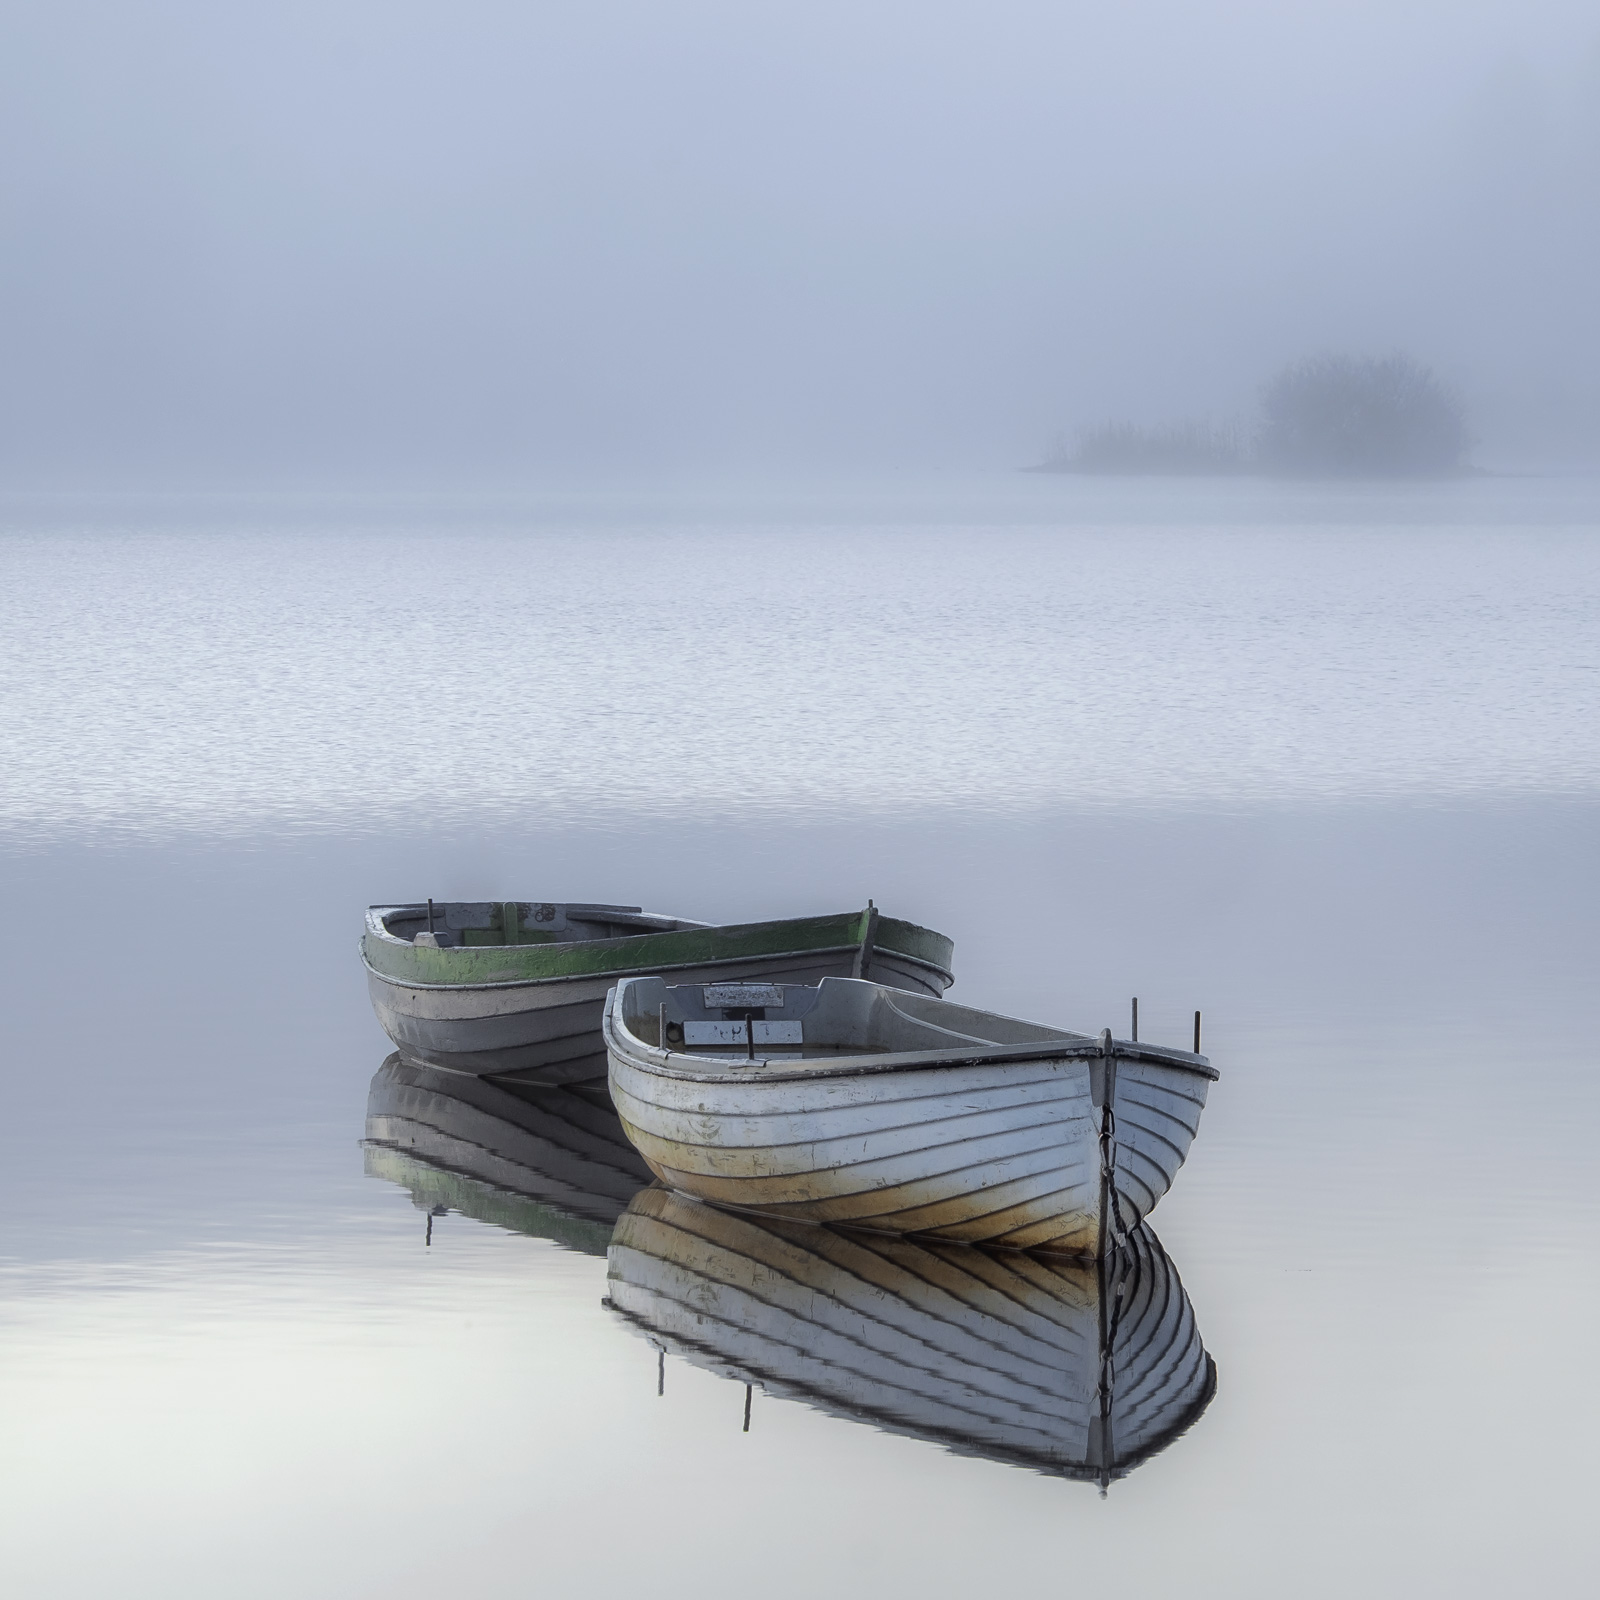 Becalmed in the middle of Loch Rusky I used a longish lens to get a little closer compressing the perspective against a small...